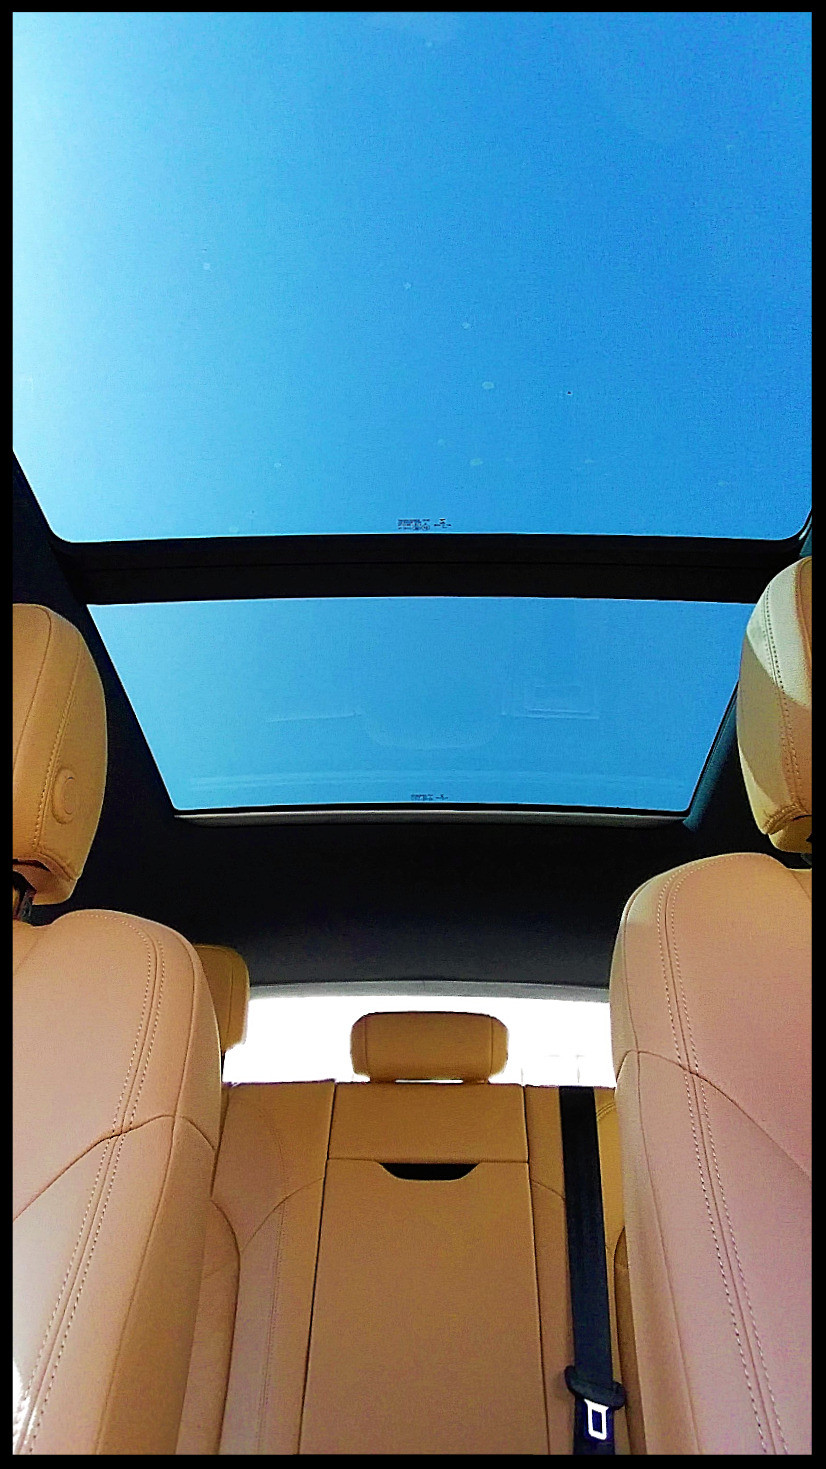 Porsche Macan Panoramic Sunroofs